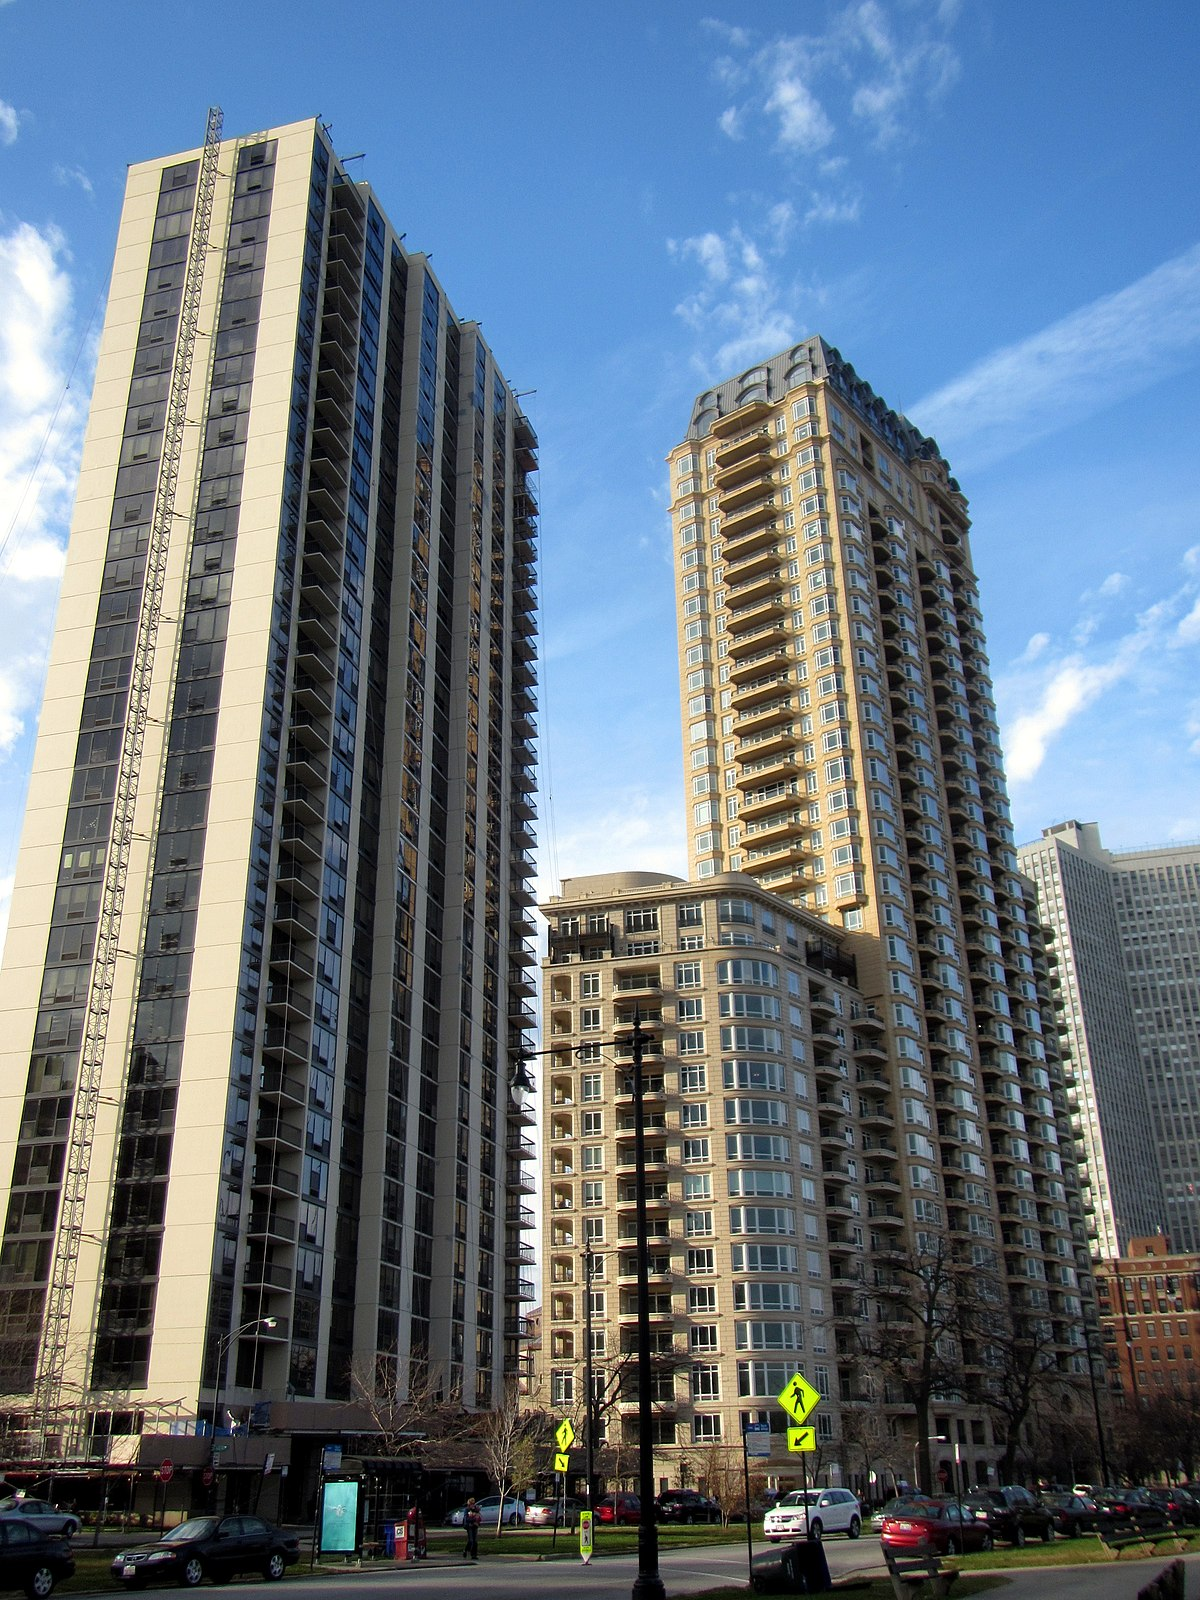 North Park Lincoln >> Lake View, Chicago - Simple English Wikipedia, the free encyclopedia